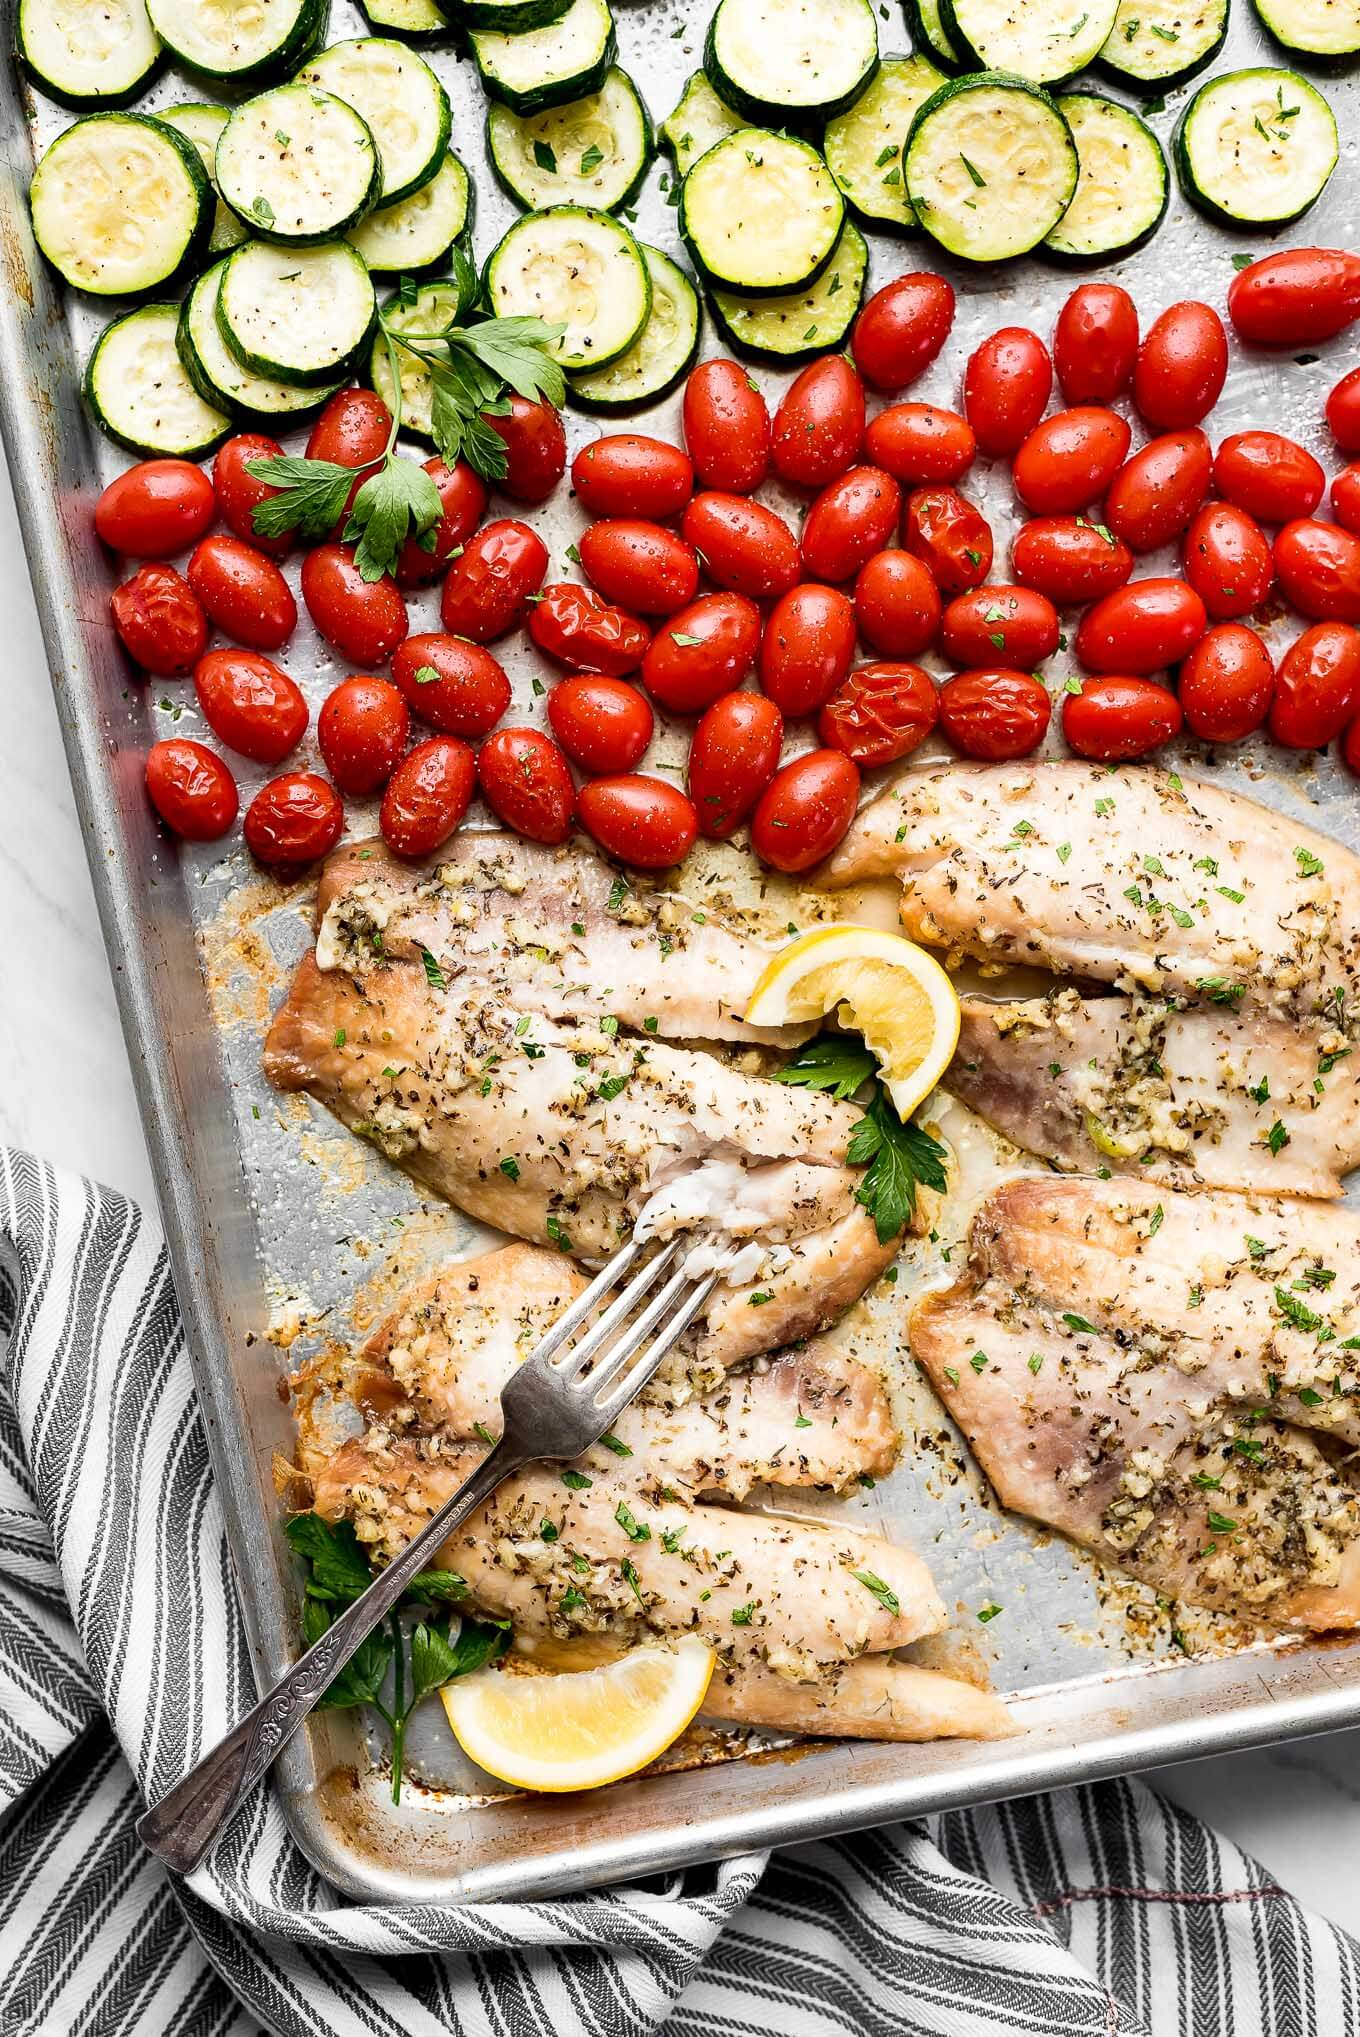 Sheet Pan Italian Baked Tilapia Garnish Glaze